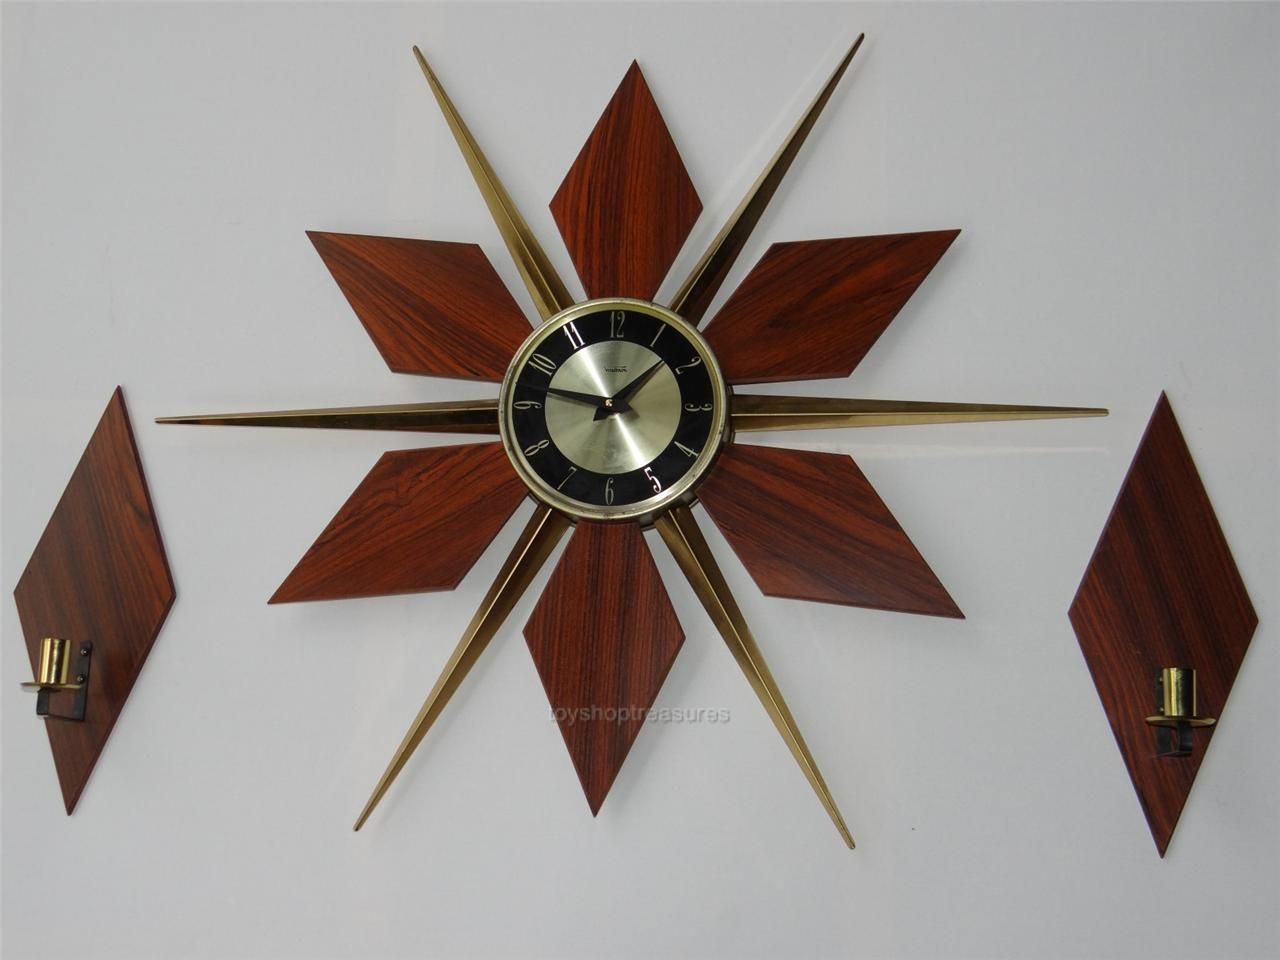 Retro genuine vintage sunburst teak brass clock eames wall clock retro genuine vintage sunburst teak brass clock eames wall clock with sconces amipublicfo Images